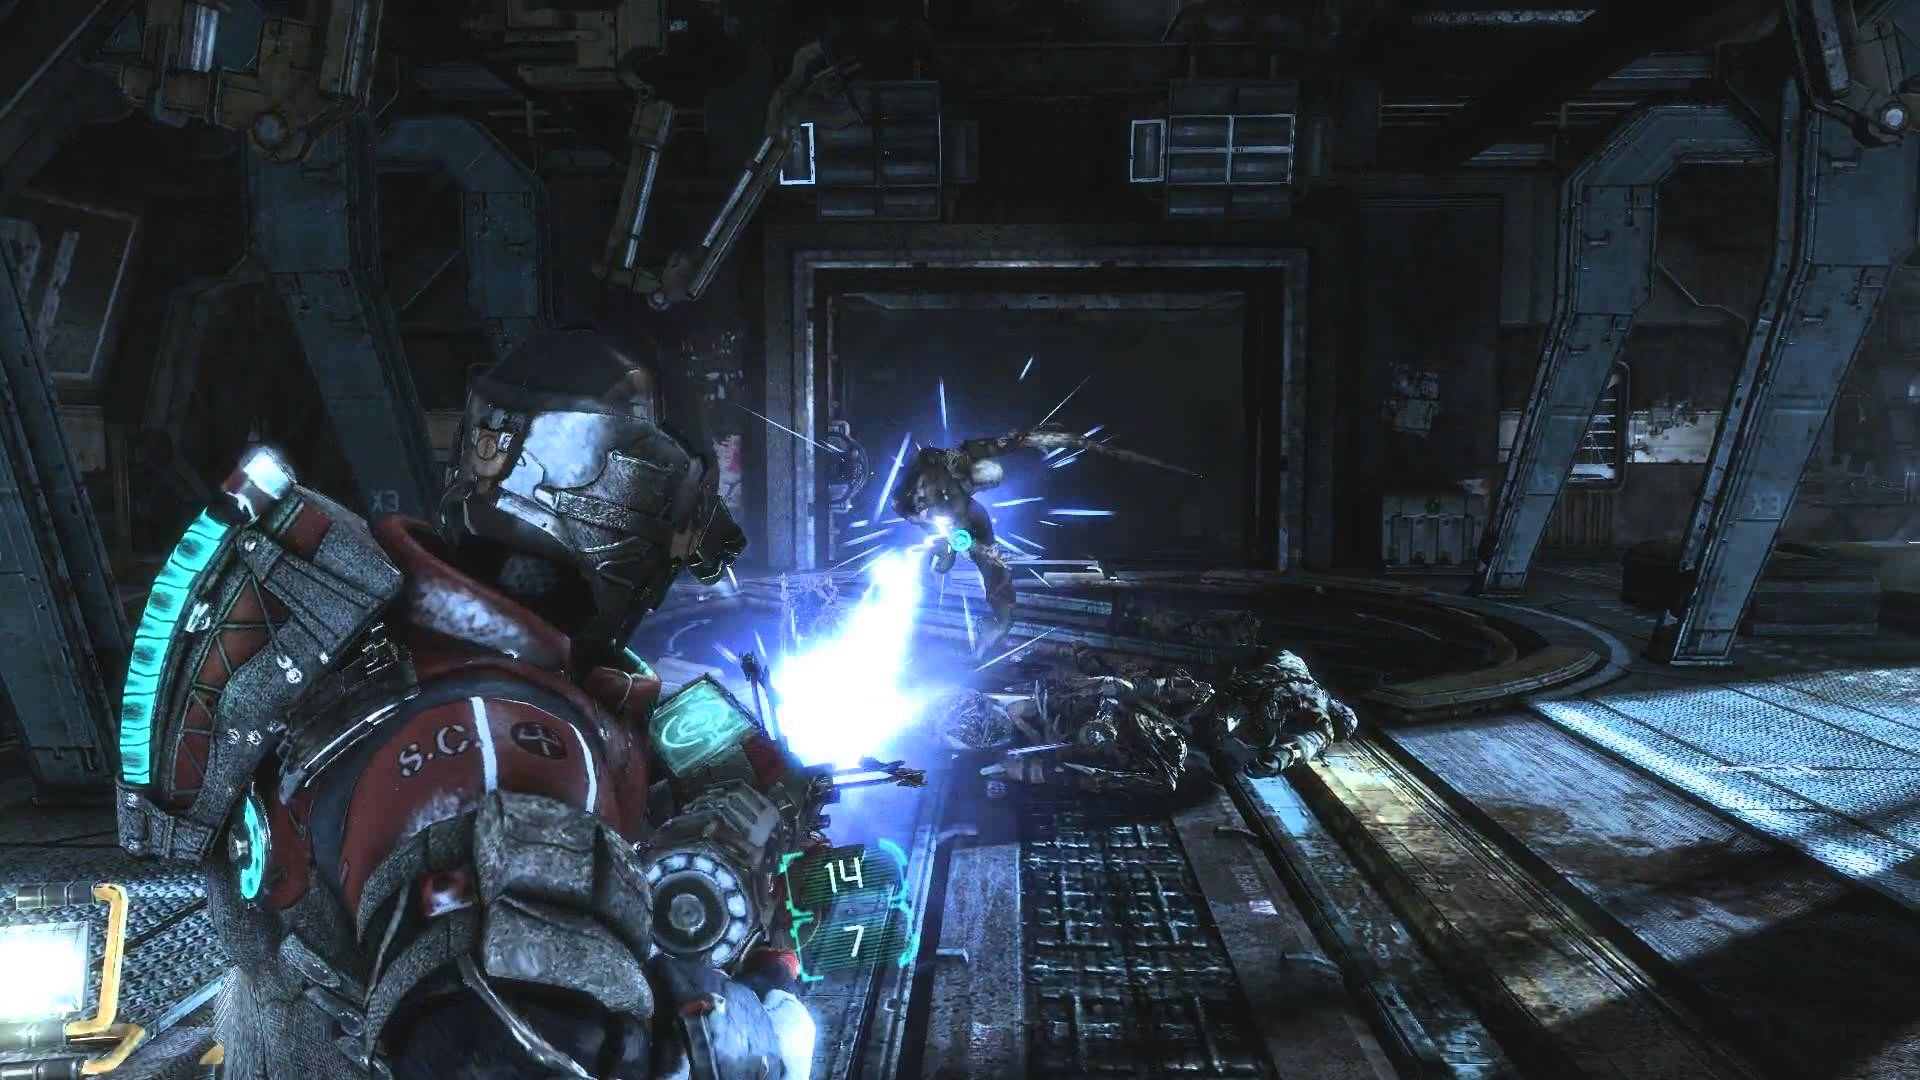 Mjolnir dead space wiki fandom powered by wikia maxresdefault 2 malvernweather Image collections